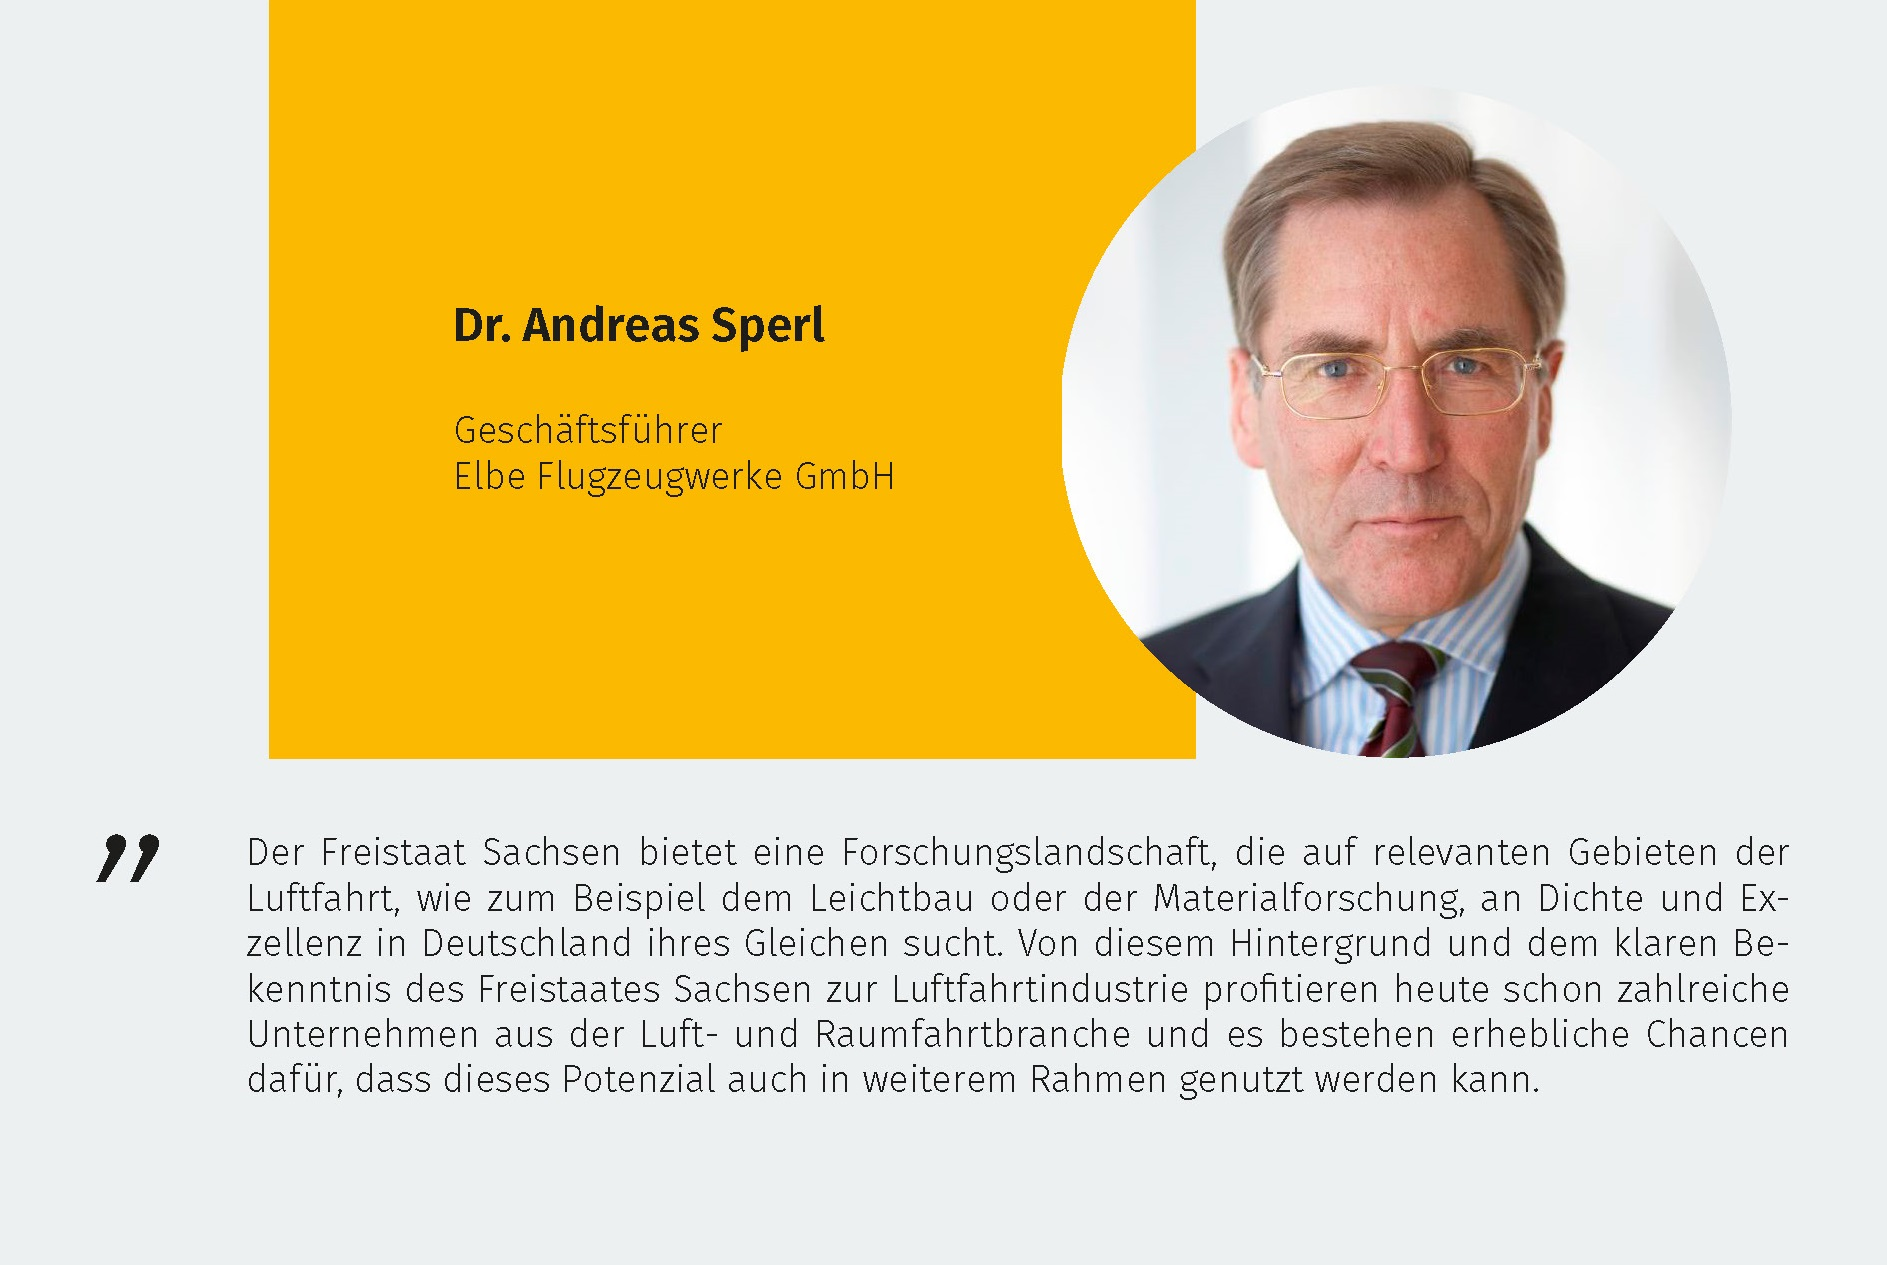 Dr. Andreas Sperl